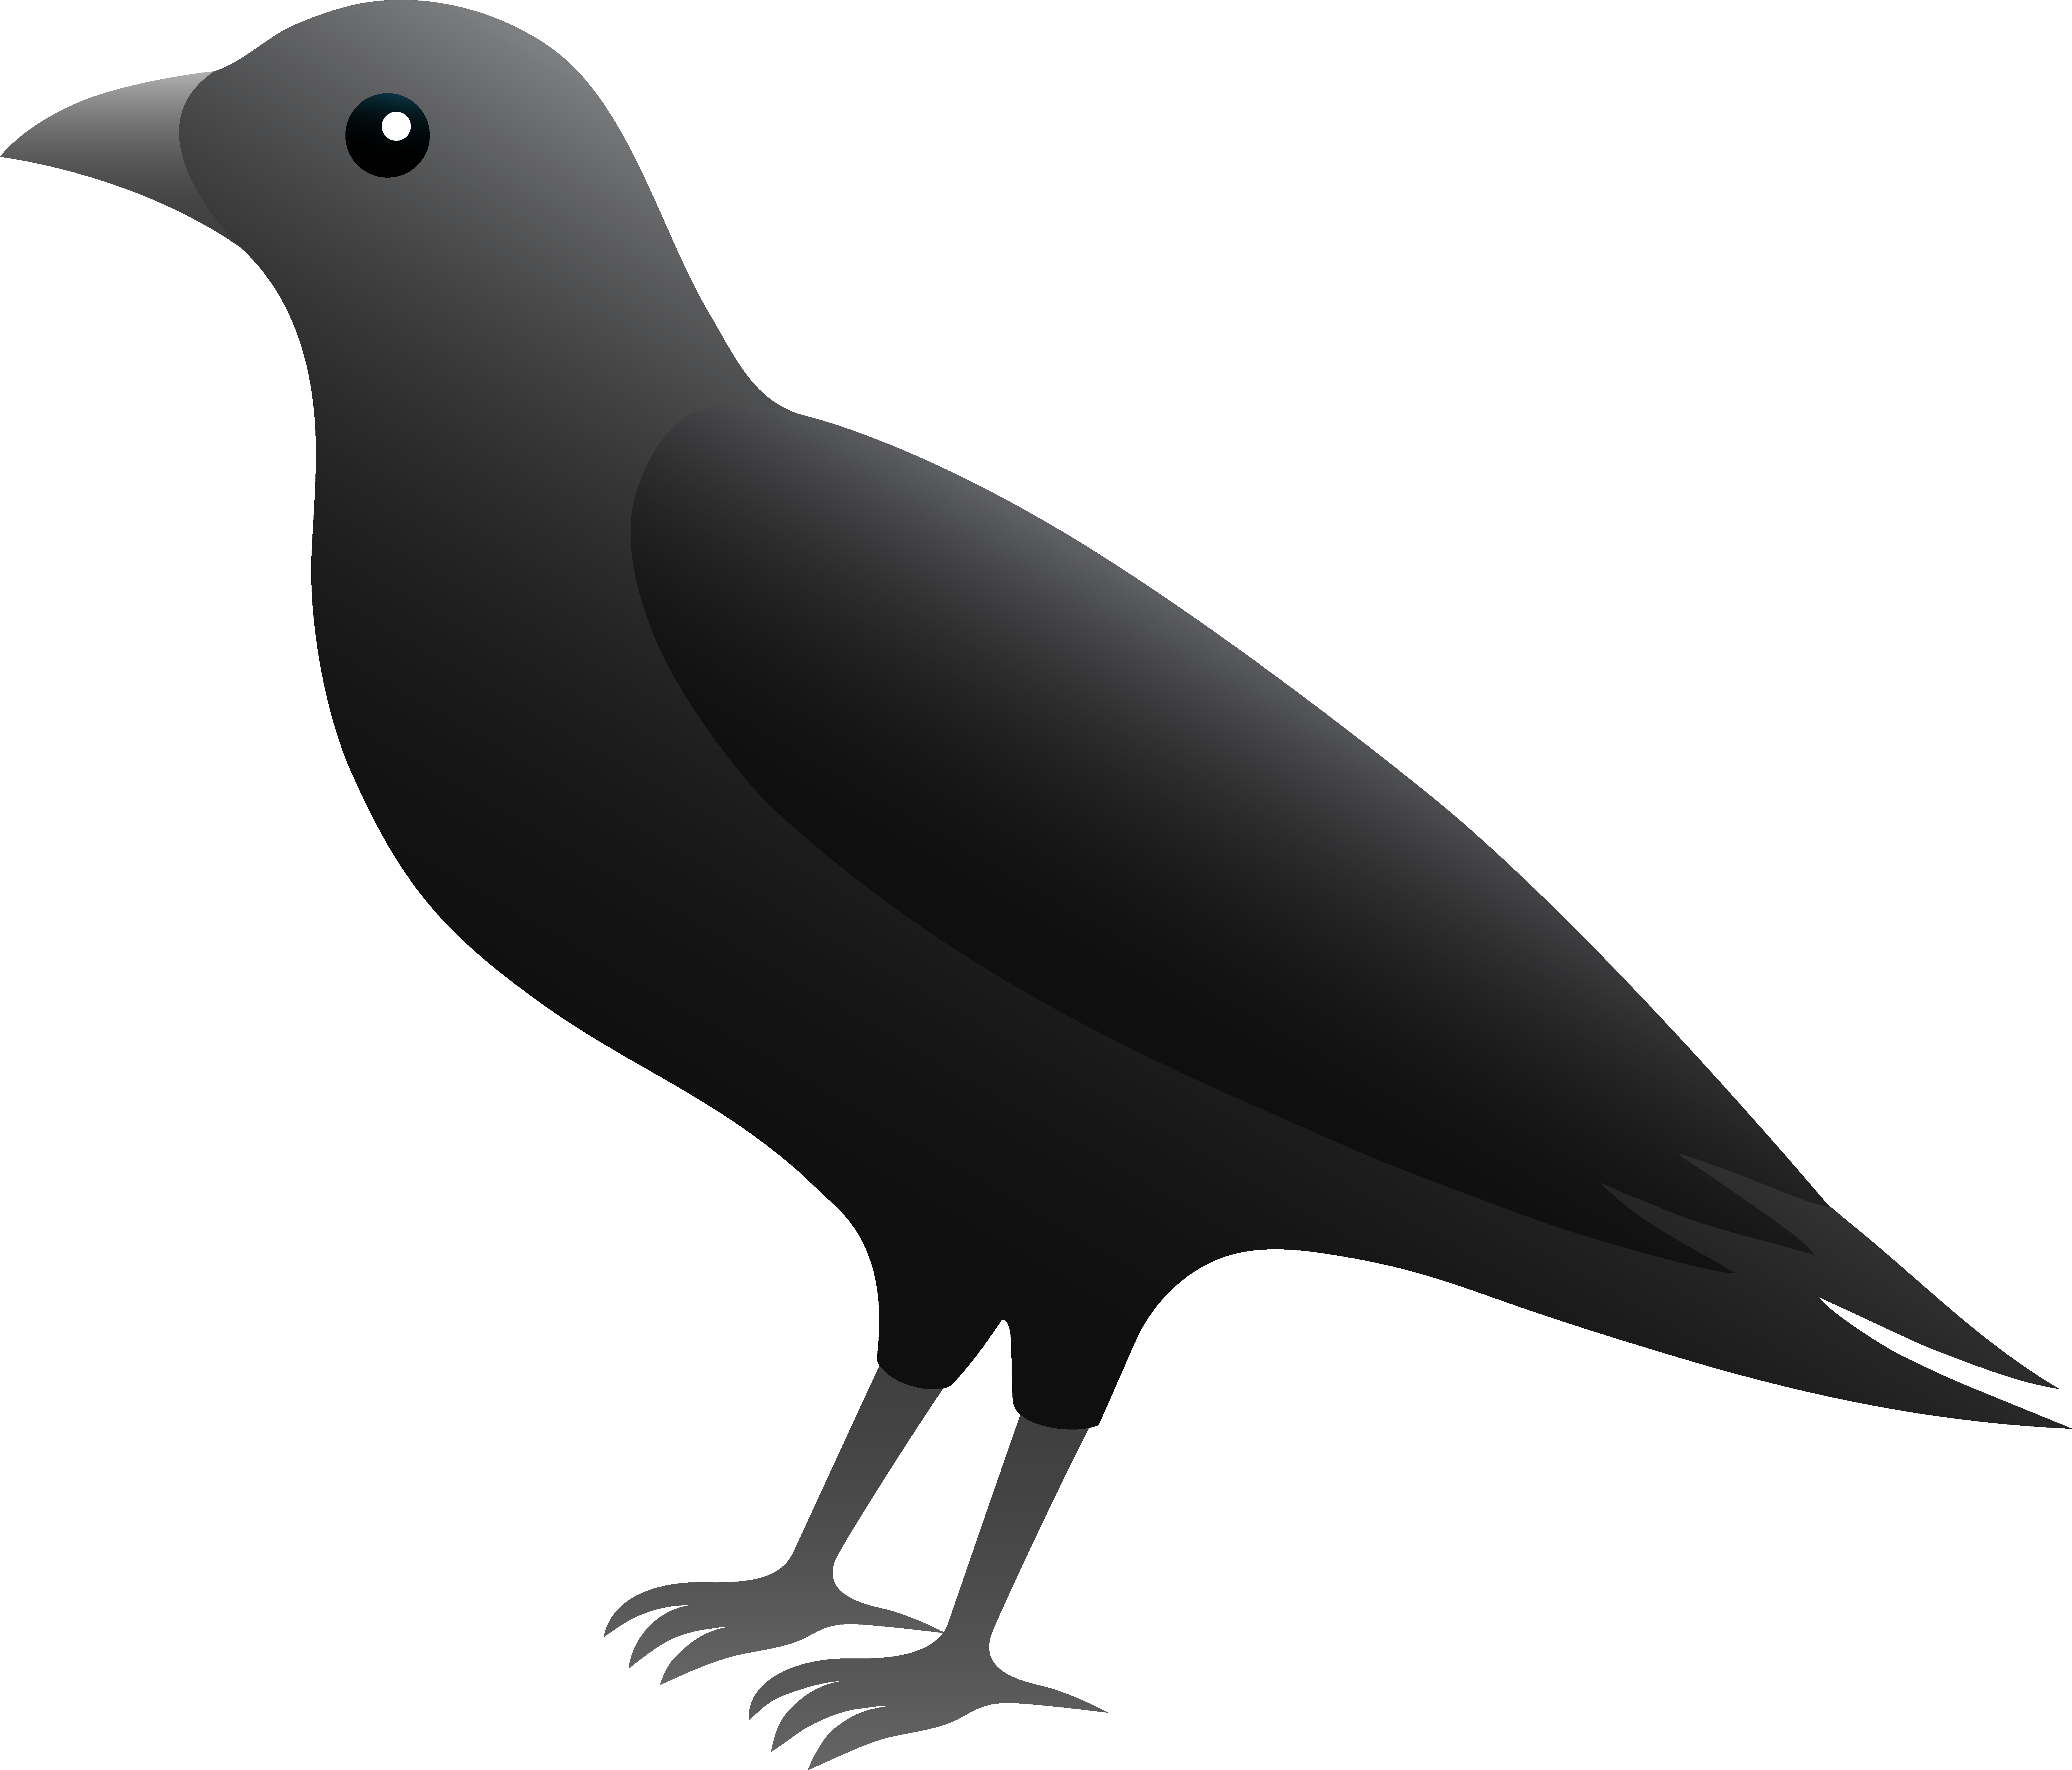 Crow clipart #3, Download drawings